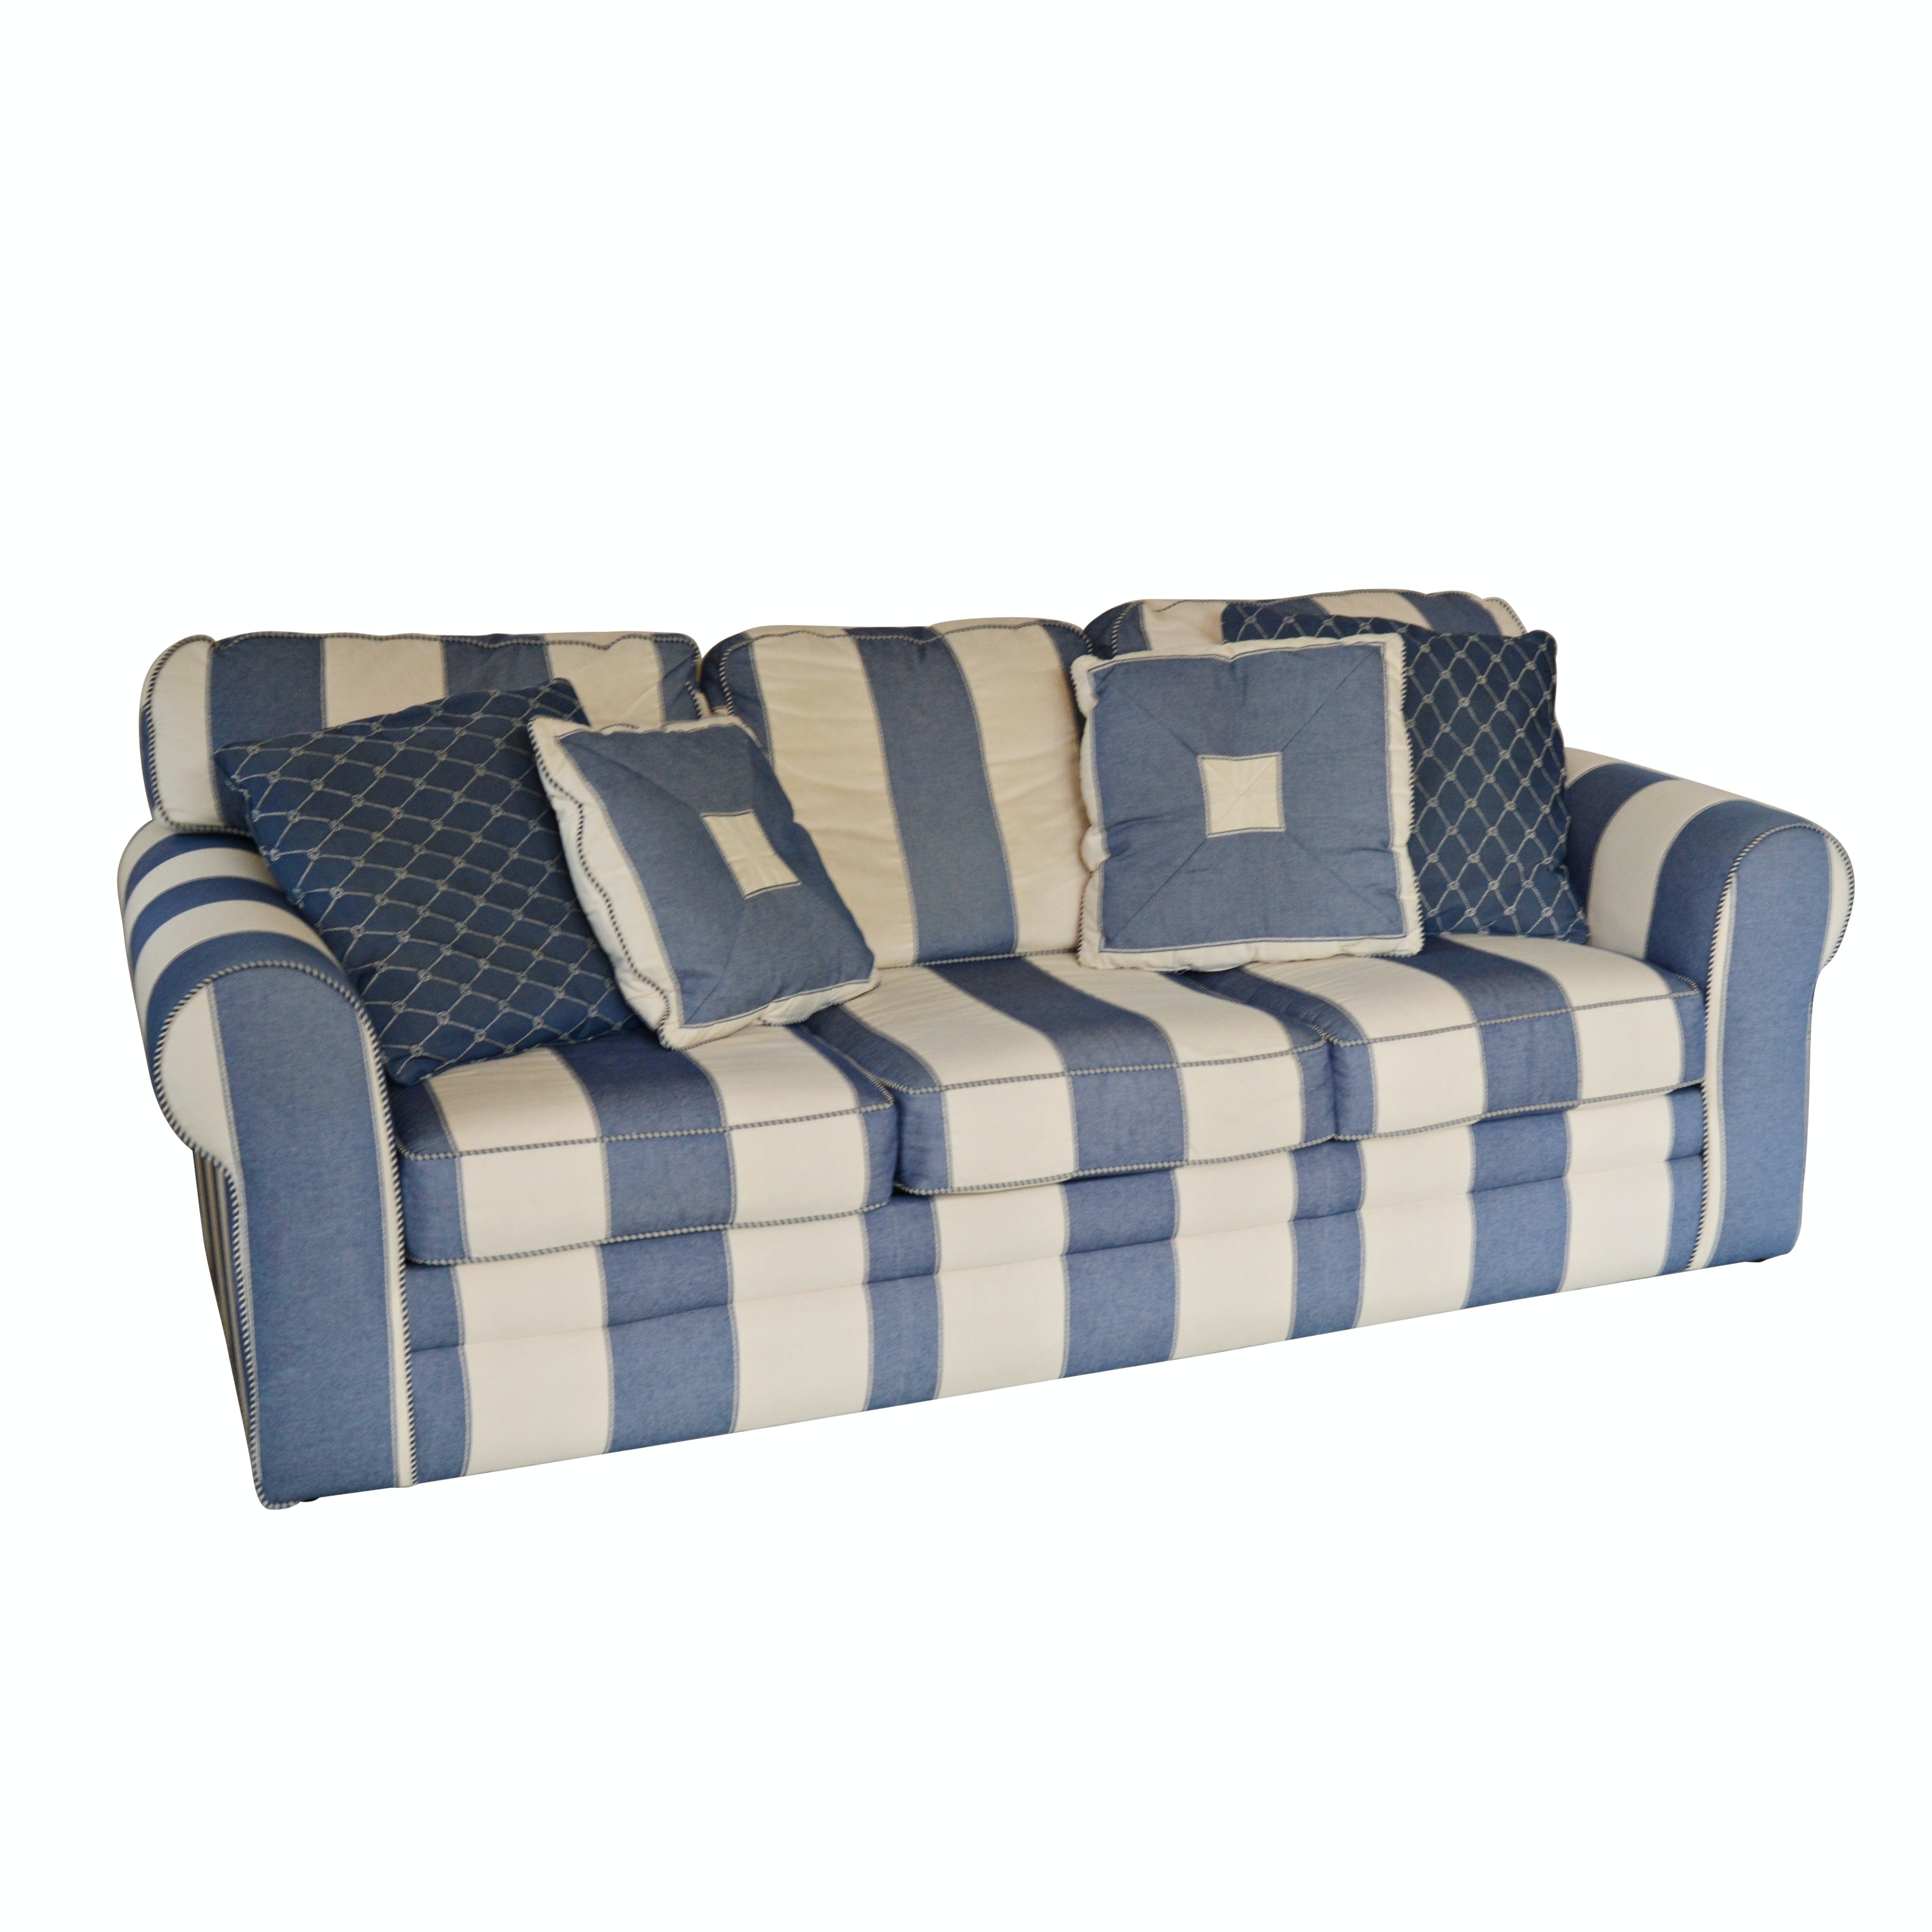 Denim Blue and Cream Striped Sofa by J.G. Hook for Bassett Furniture